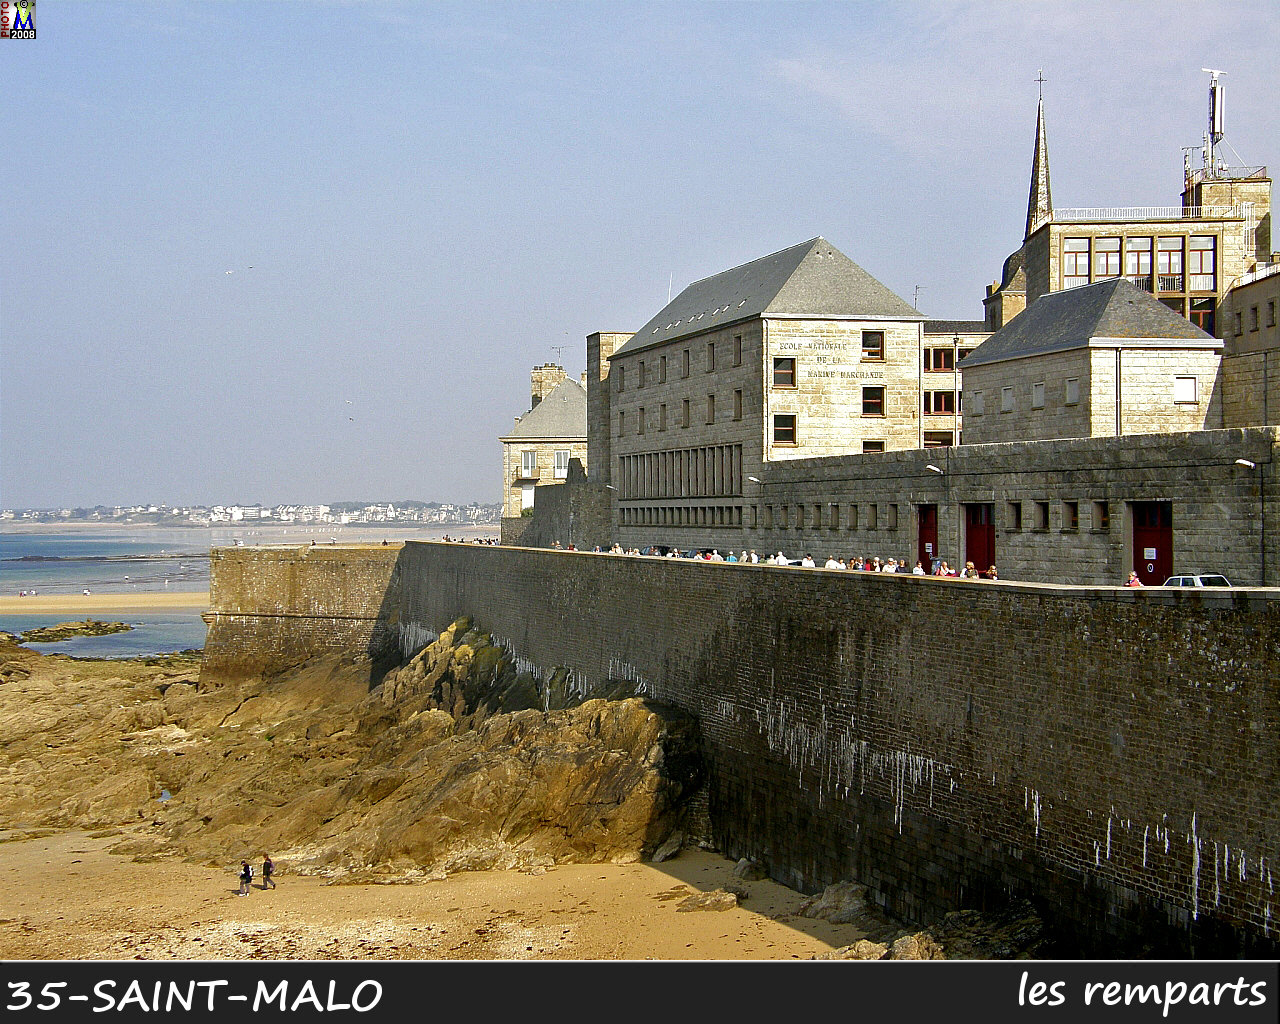 35StMALO_remparts_116.jpg